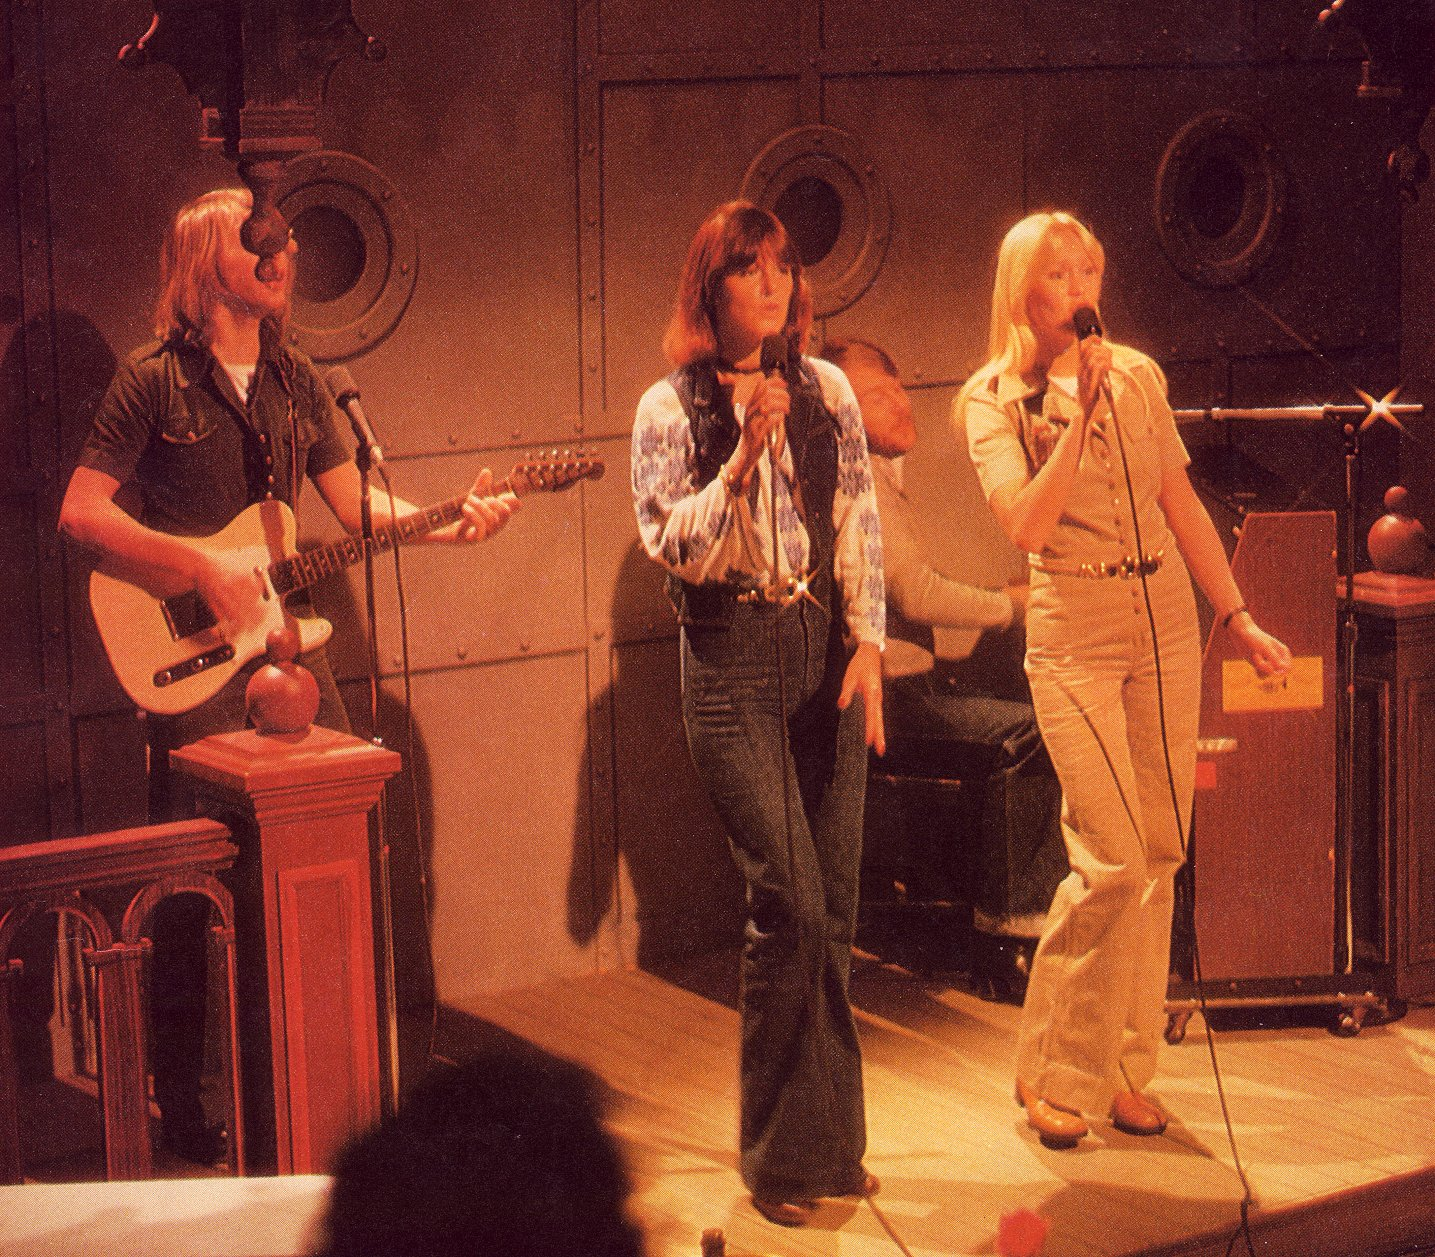 abba_on_stage_portholes